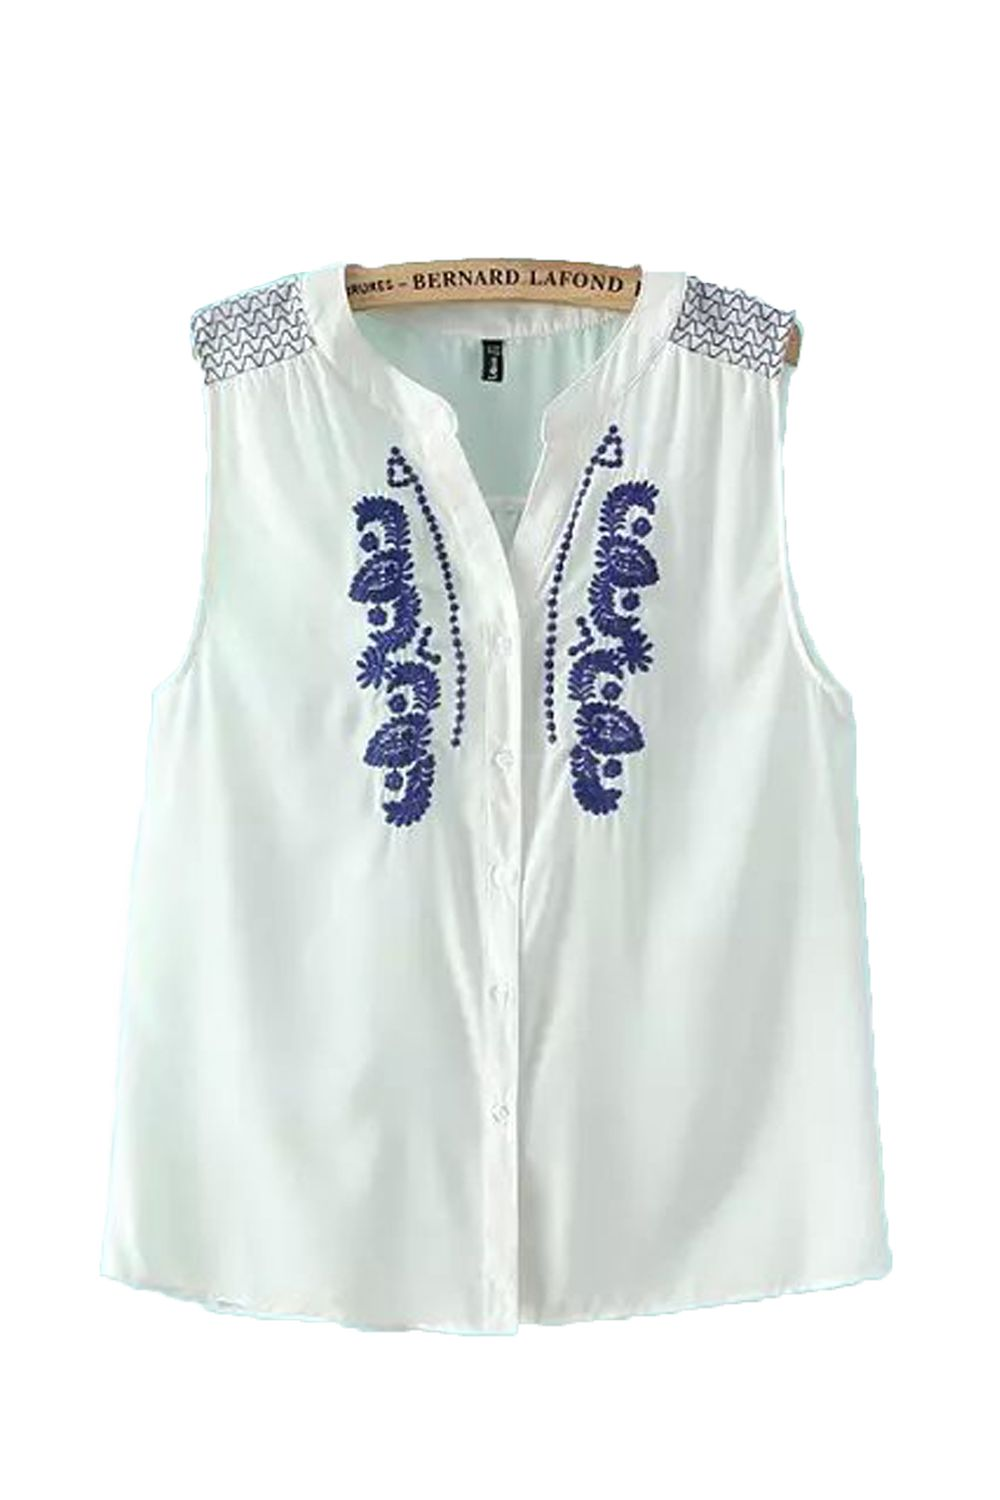 a40834bc Sweet Blue and White Vintage Style Button Down Embroidery Sleeveless Summer  Shirt #Blue_and_White #Vintage #Style #Embroidery #Summer #Shirt #Fashion